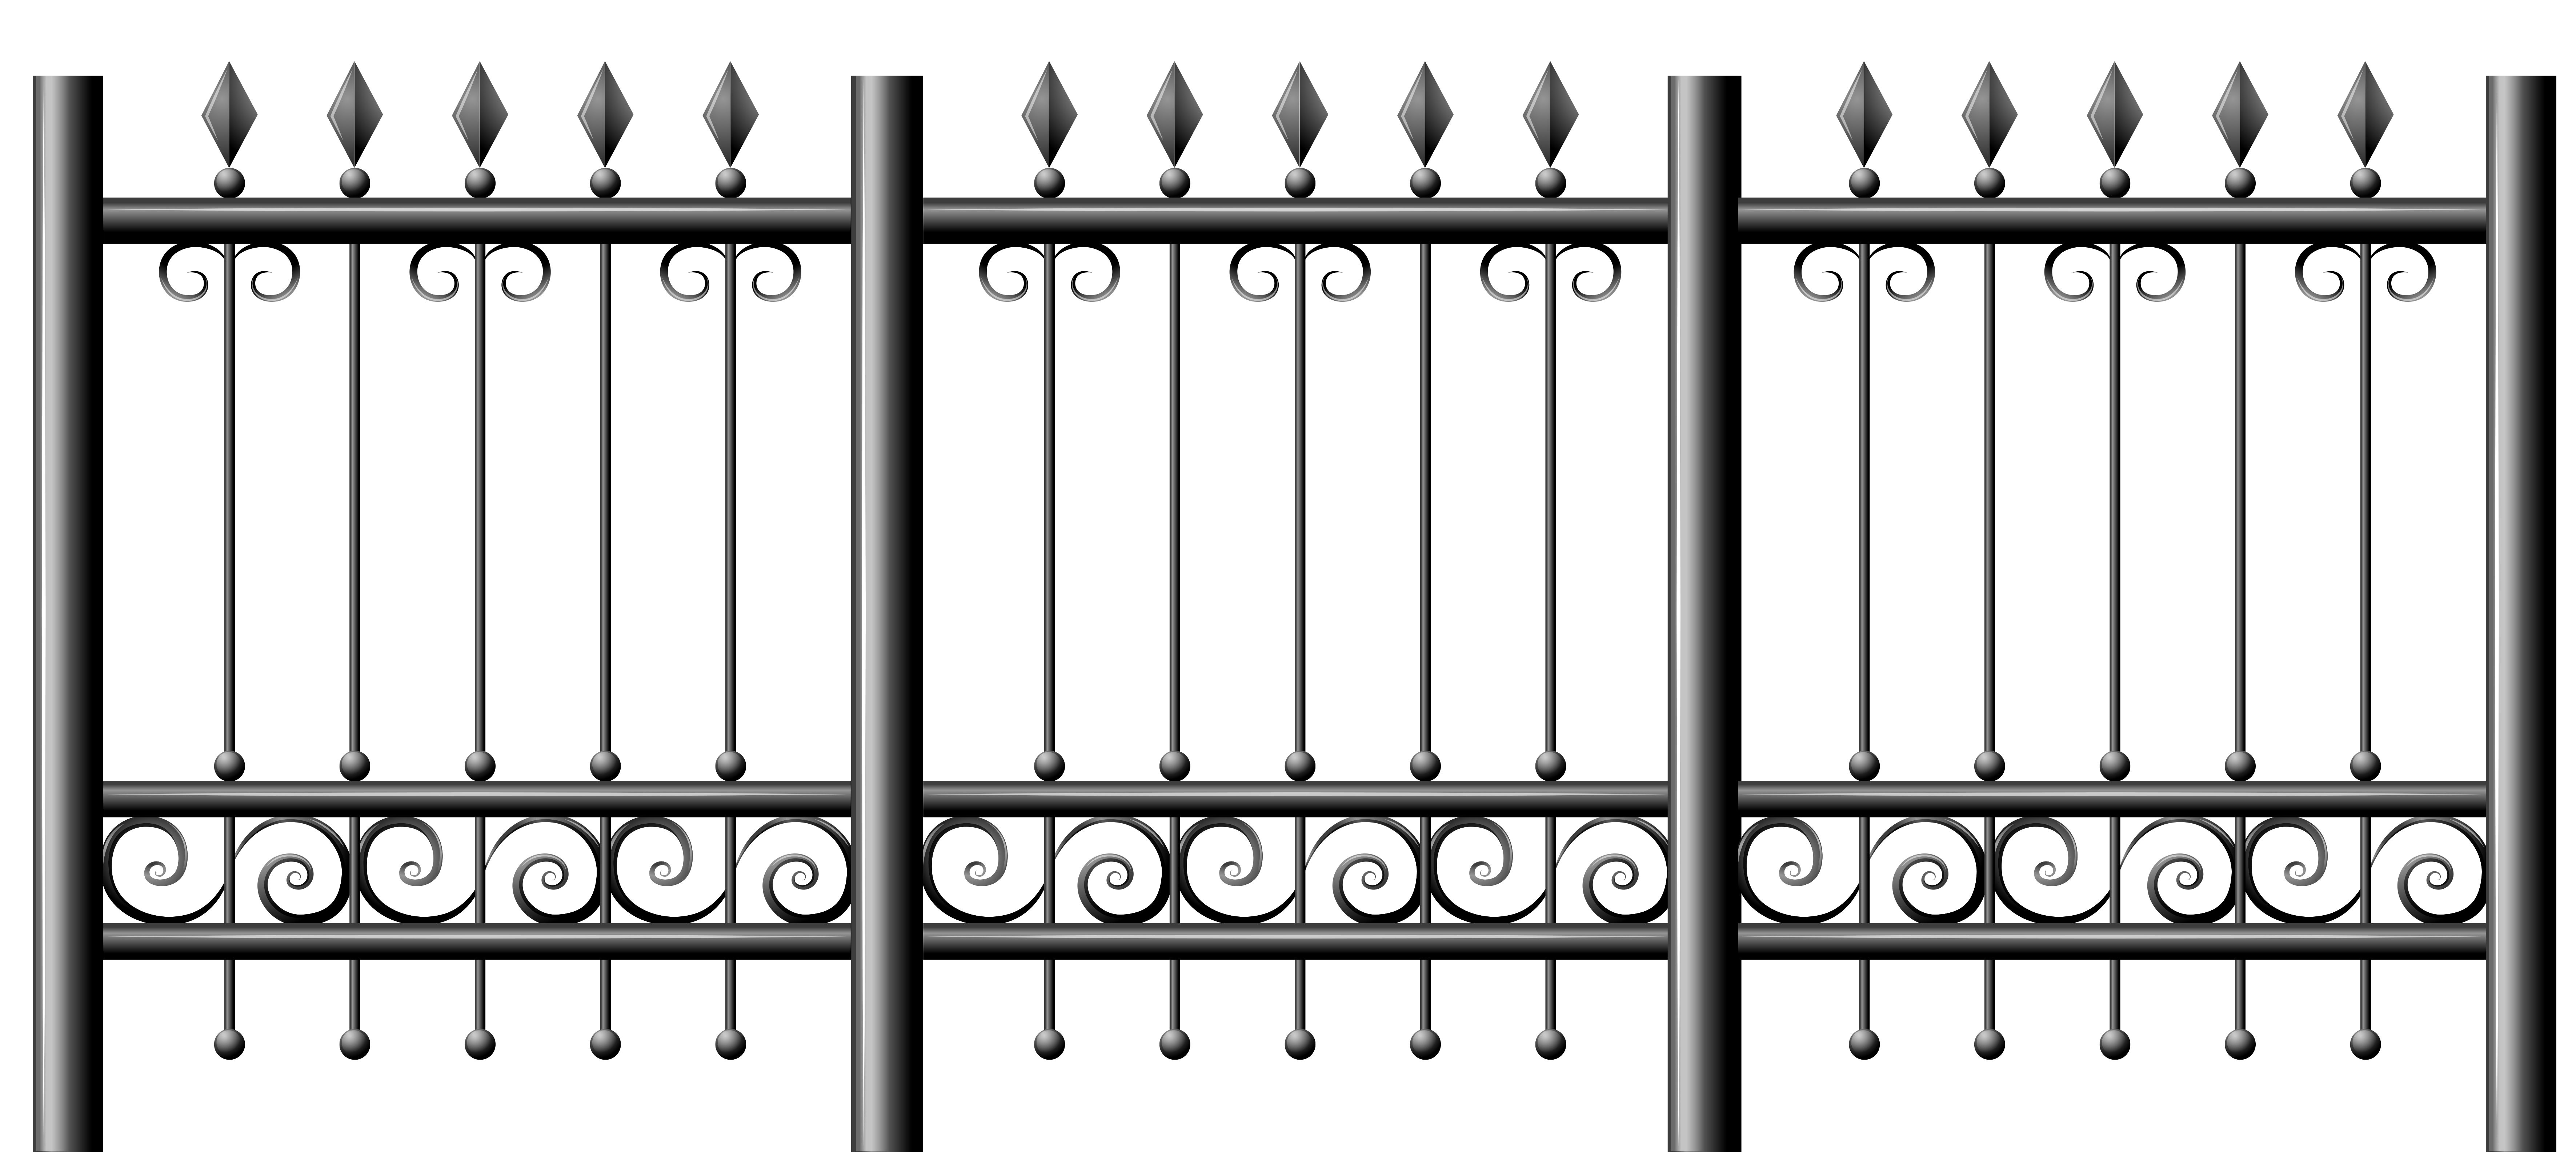 School fence clipart clip art library download Transparent Iron Fence PNG Clipart | Gallery Yopriceville - High ... clip art library download